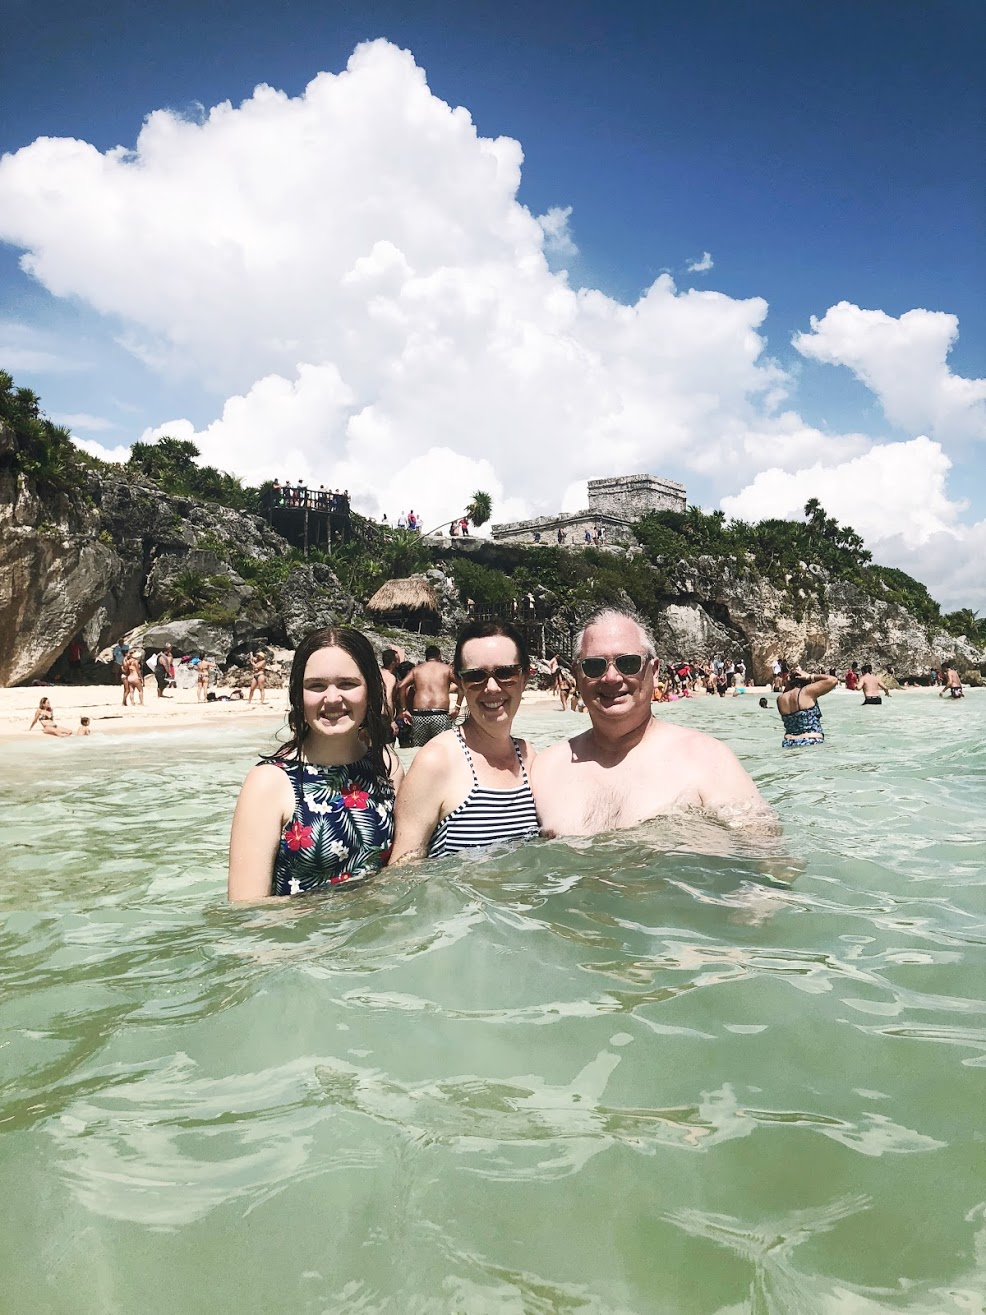 Swimming near the Tulum Ruins on our Cozumel Excursion